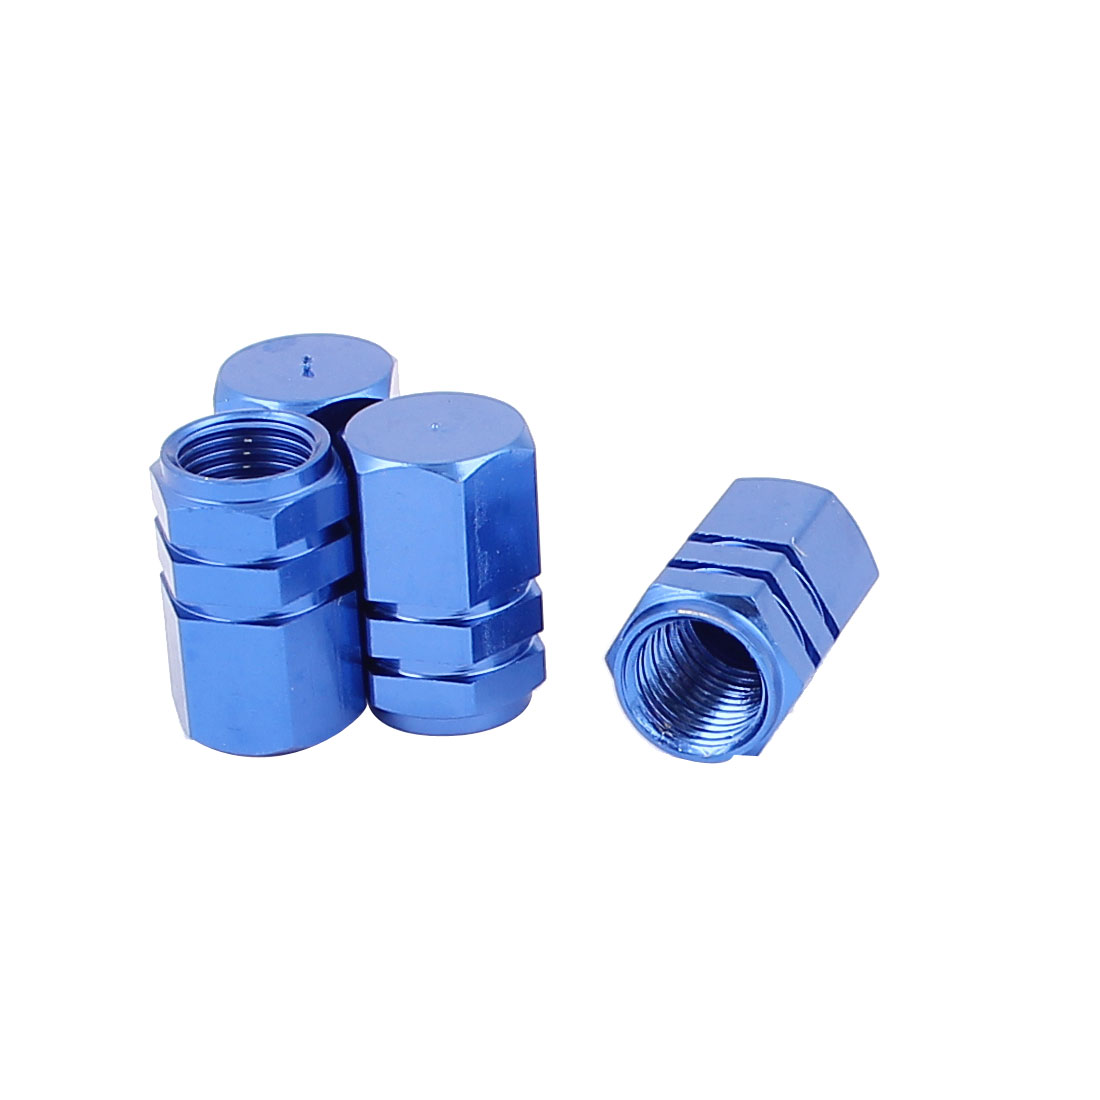 4 Pcs Royal Blue Alloy Car Tyre Tire Valve Cap Cover Replacement